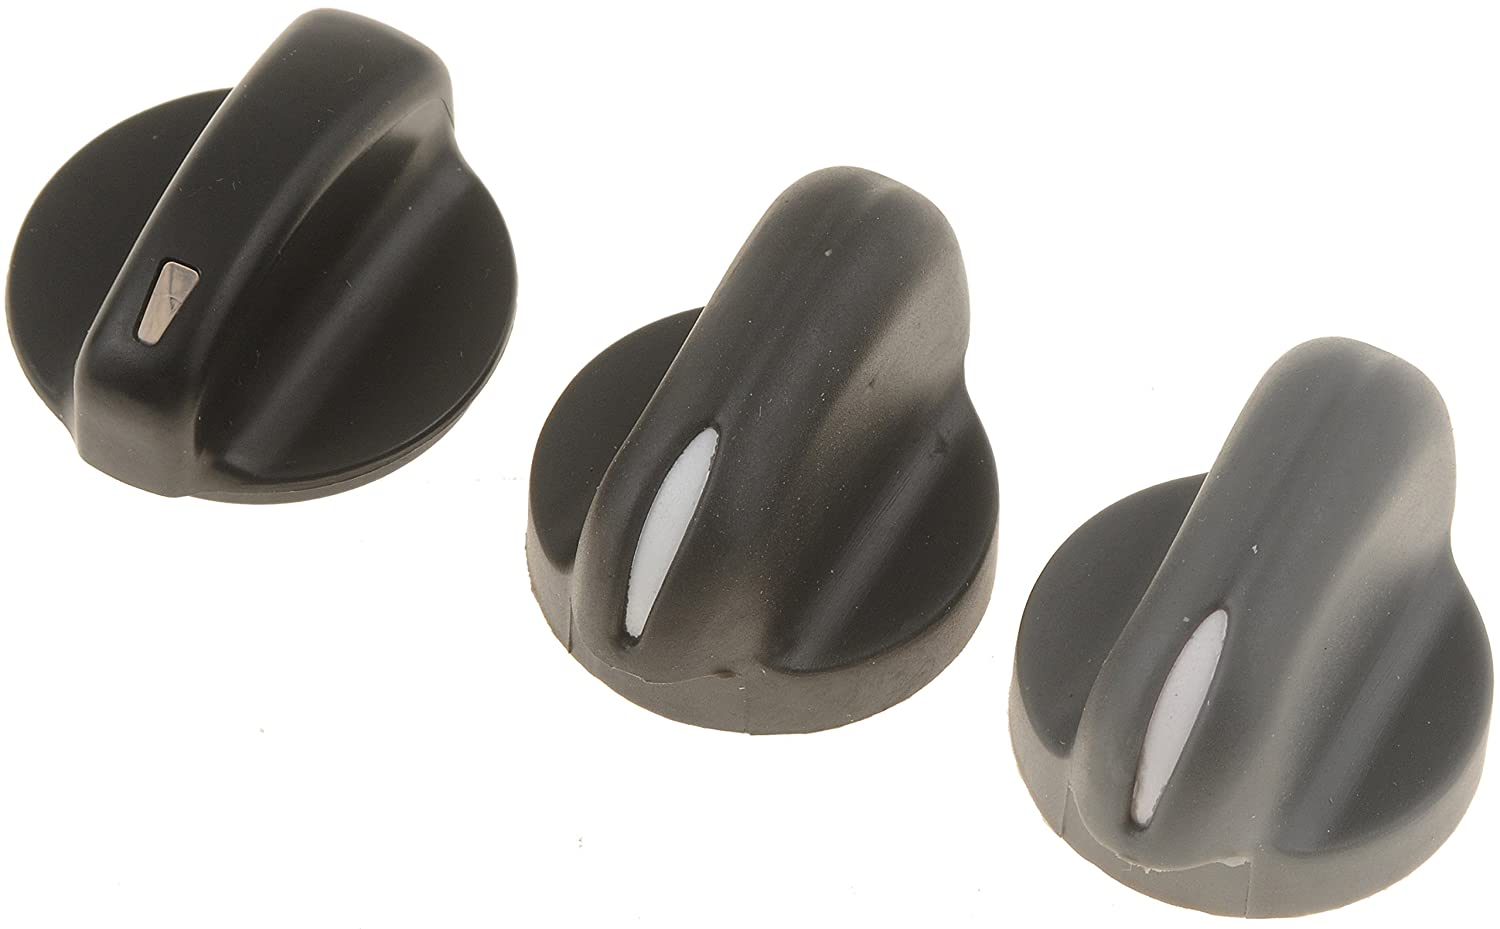 Dorman 76882 Temperature Control Knob Assortment